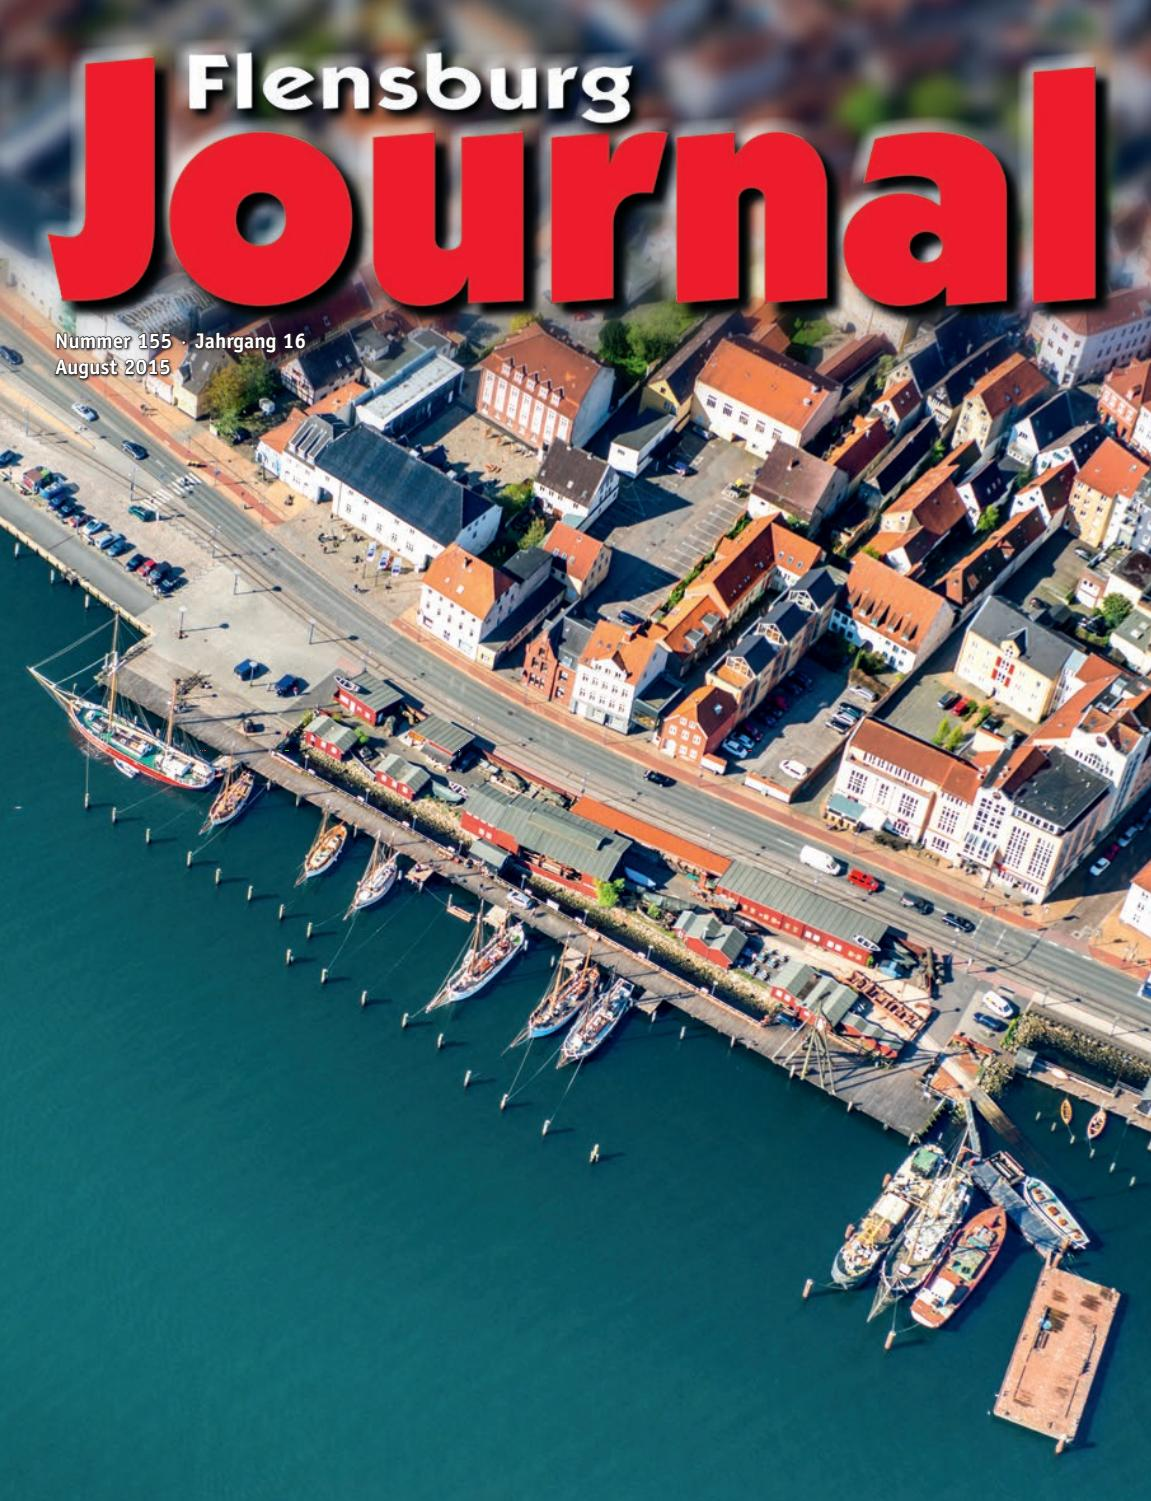 flensburg journal nummer 155 by flensburg journal issuu. Black Bedroom Furniture Sets. Home Design Ideas